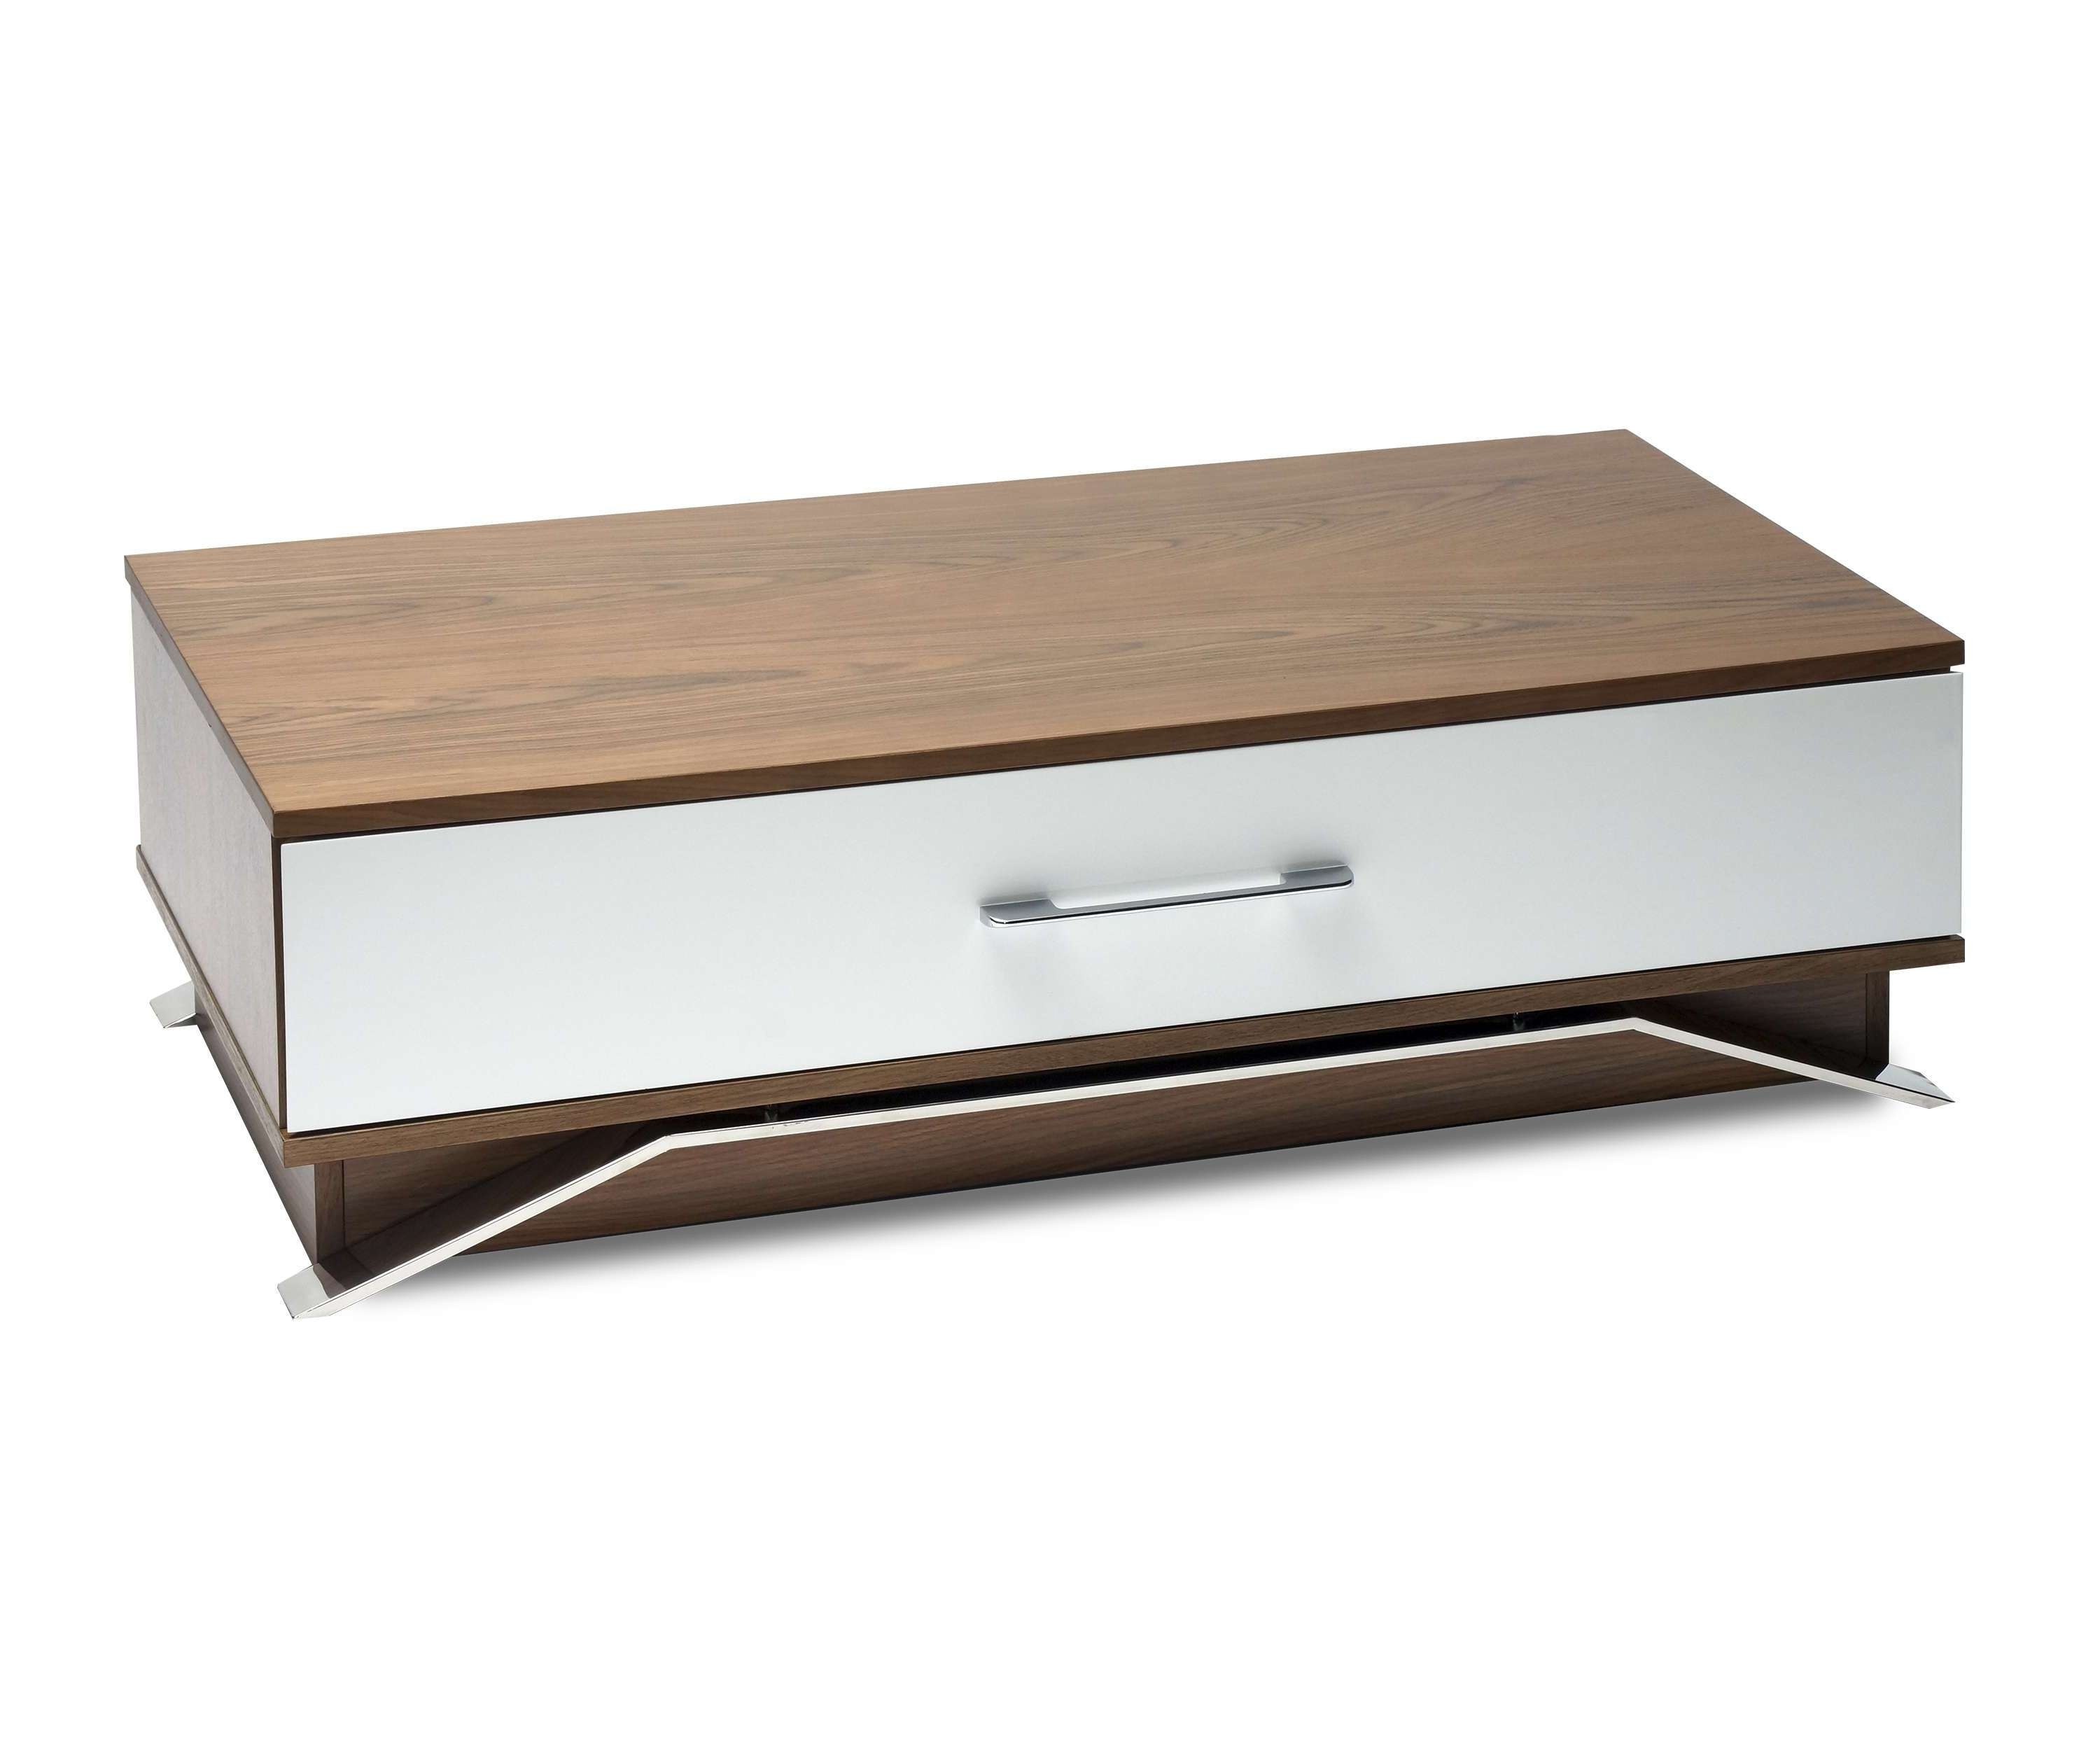 Best And Newest Bordeaux Coffee Tables Within Bordeaux Coffee Table (View 10 of 20)